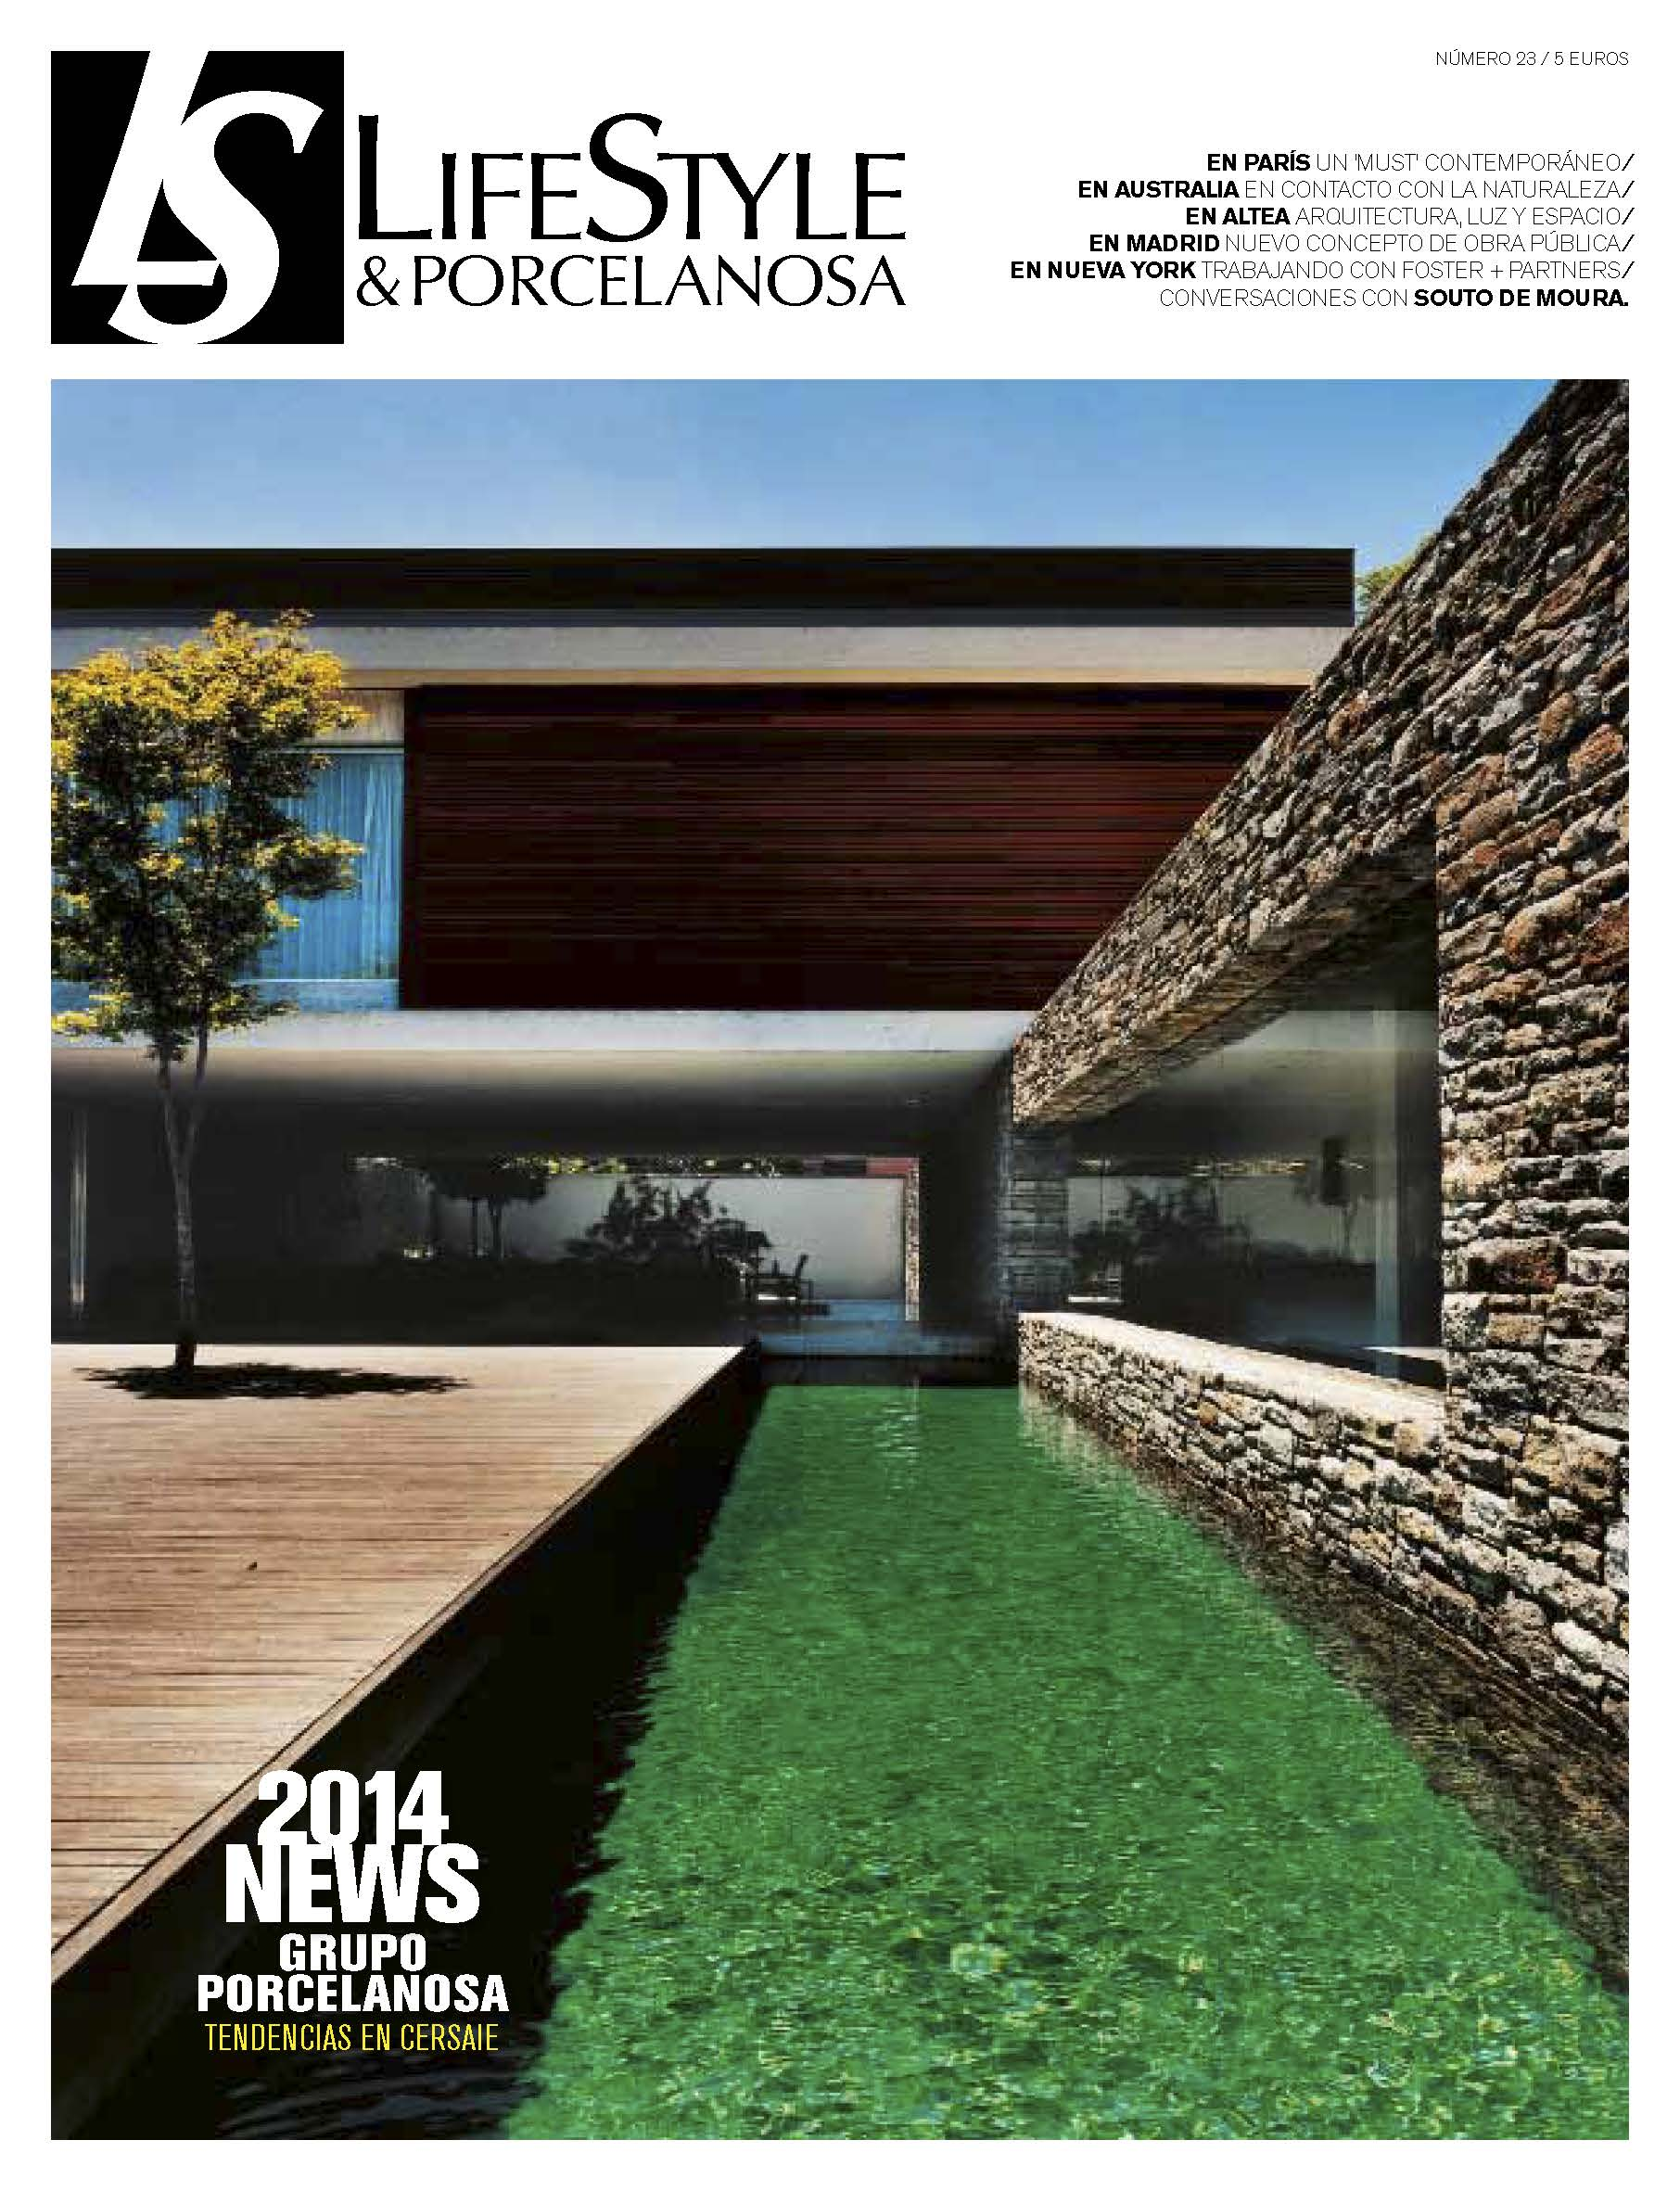 The new issue of the LifeStyle & PORCELANOSA magazine is now available